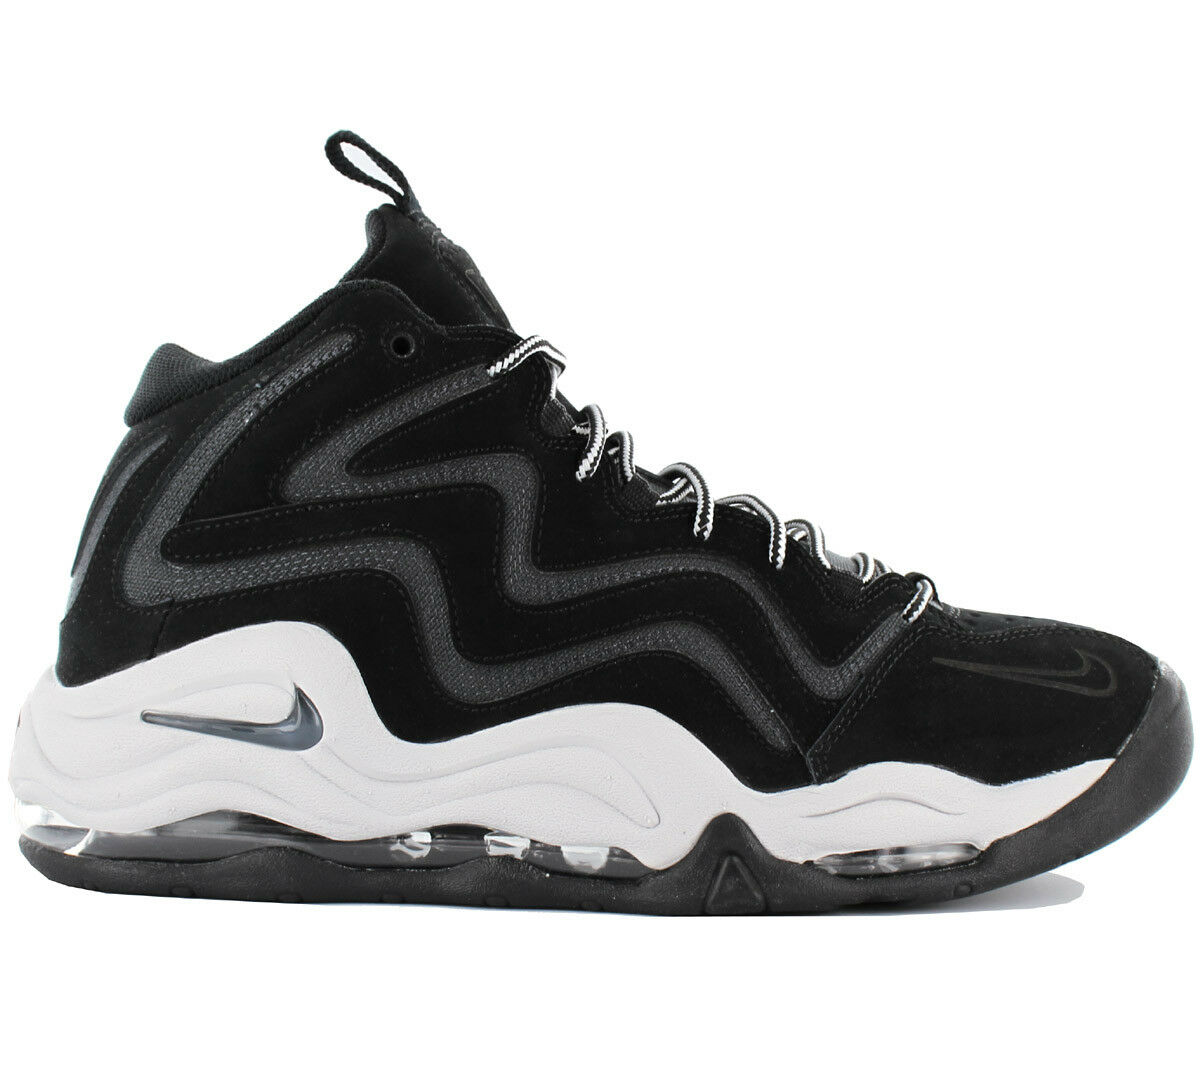 Nike Air Pippen Men's Sneakers Basketball Shoes Max Uptempo 325001-004 Seasonal price cuts, discount benefits